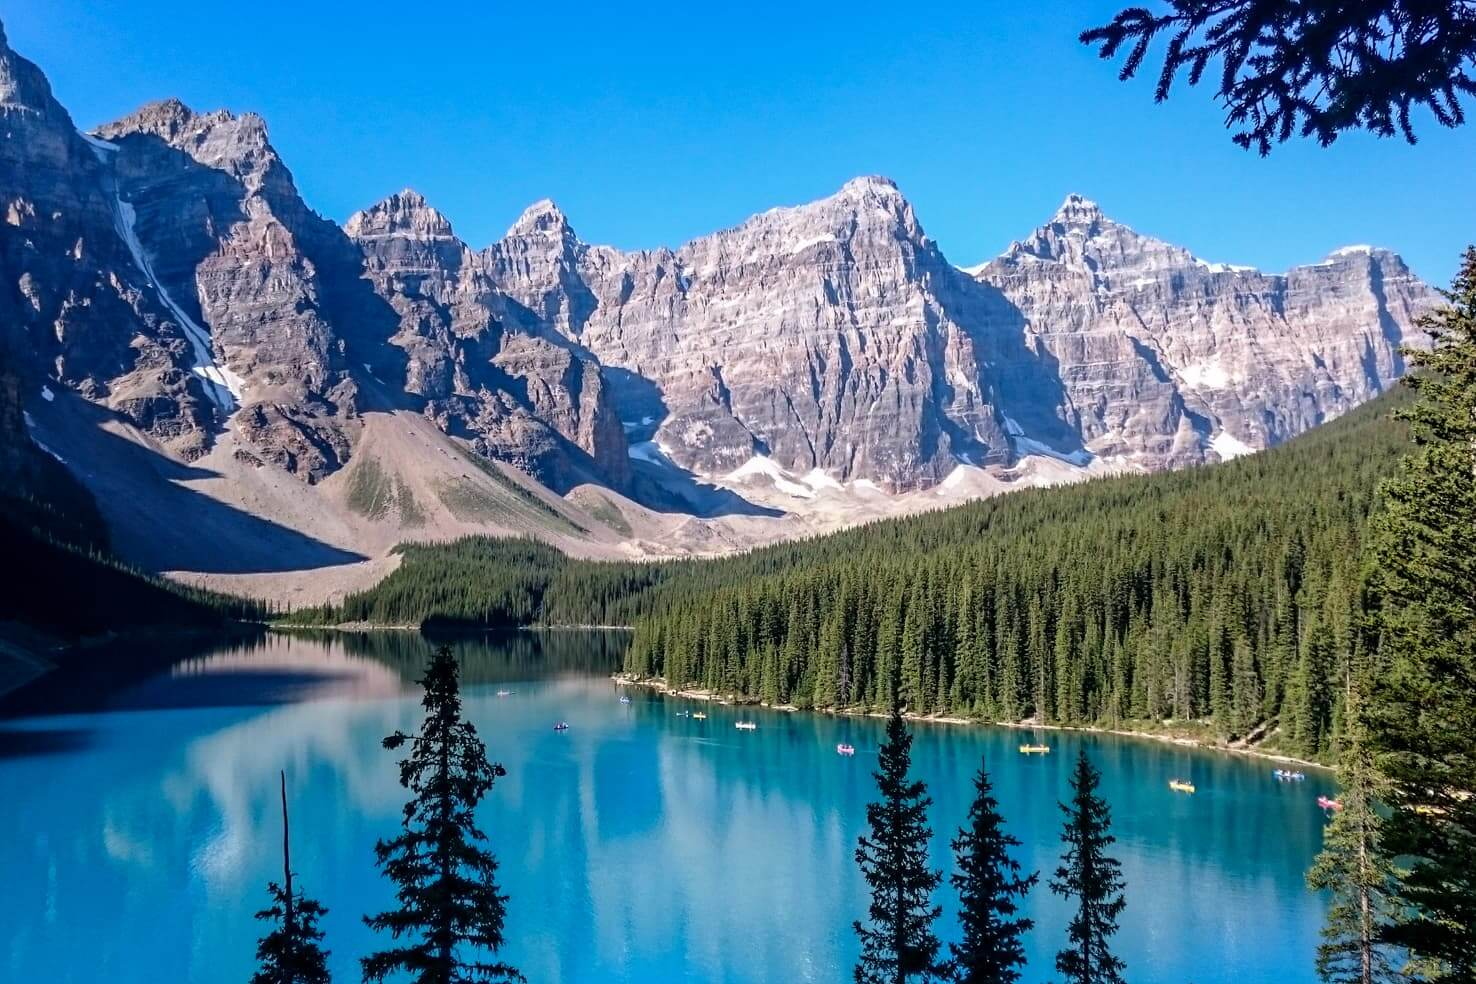 An epic travel guide to the Canadian Rockies